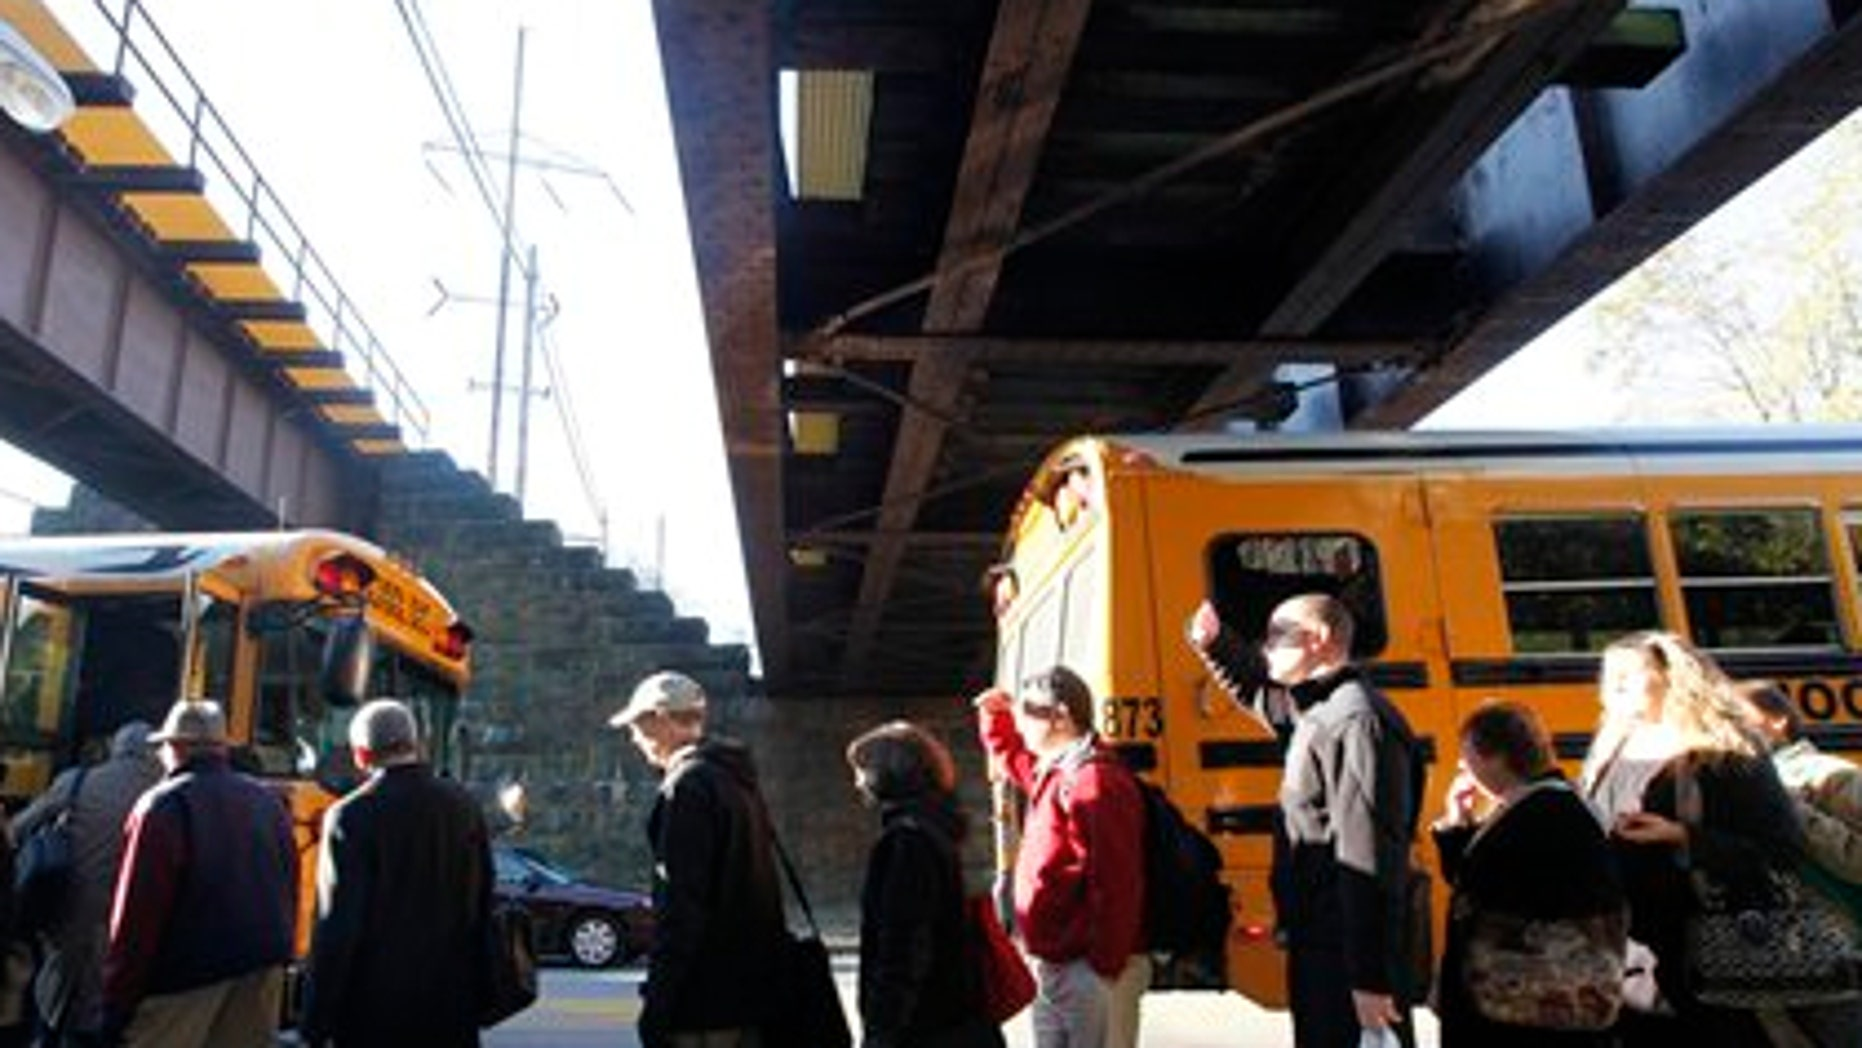 Nov. 4: Stranded commuters are loaded on buses near the scene of a train fire in Philadelphia.